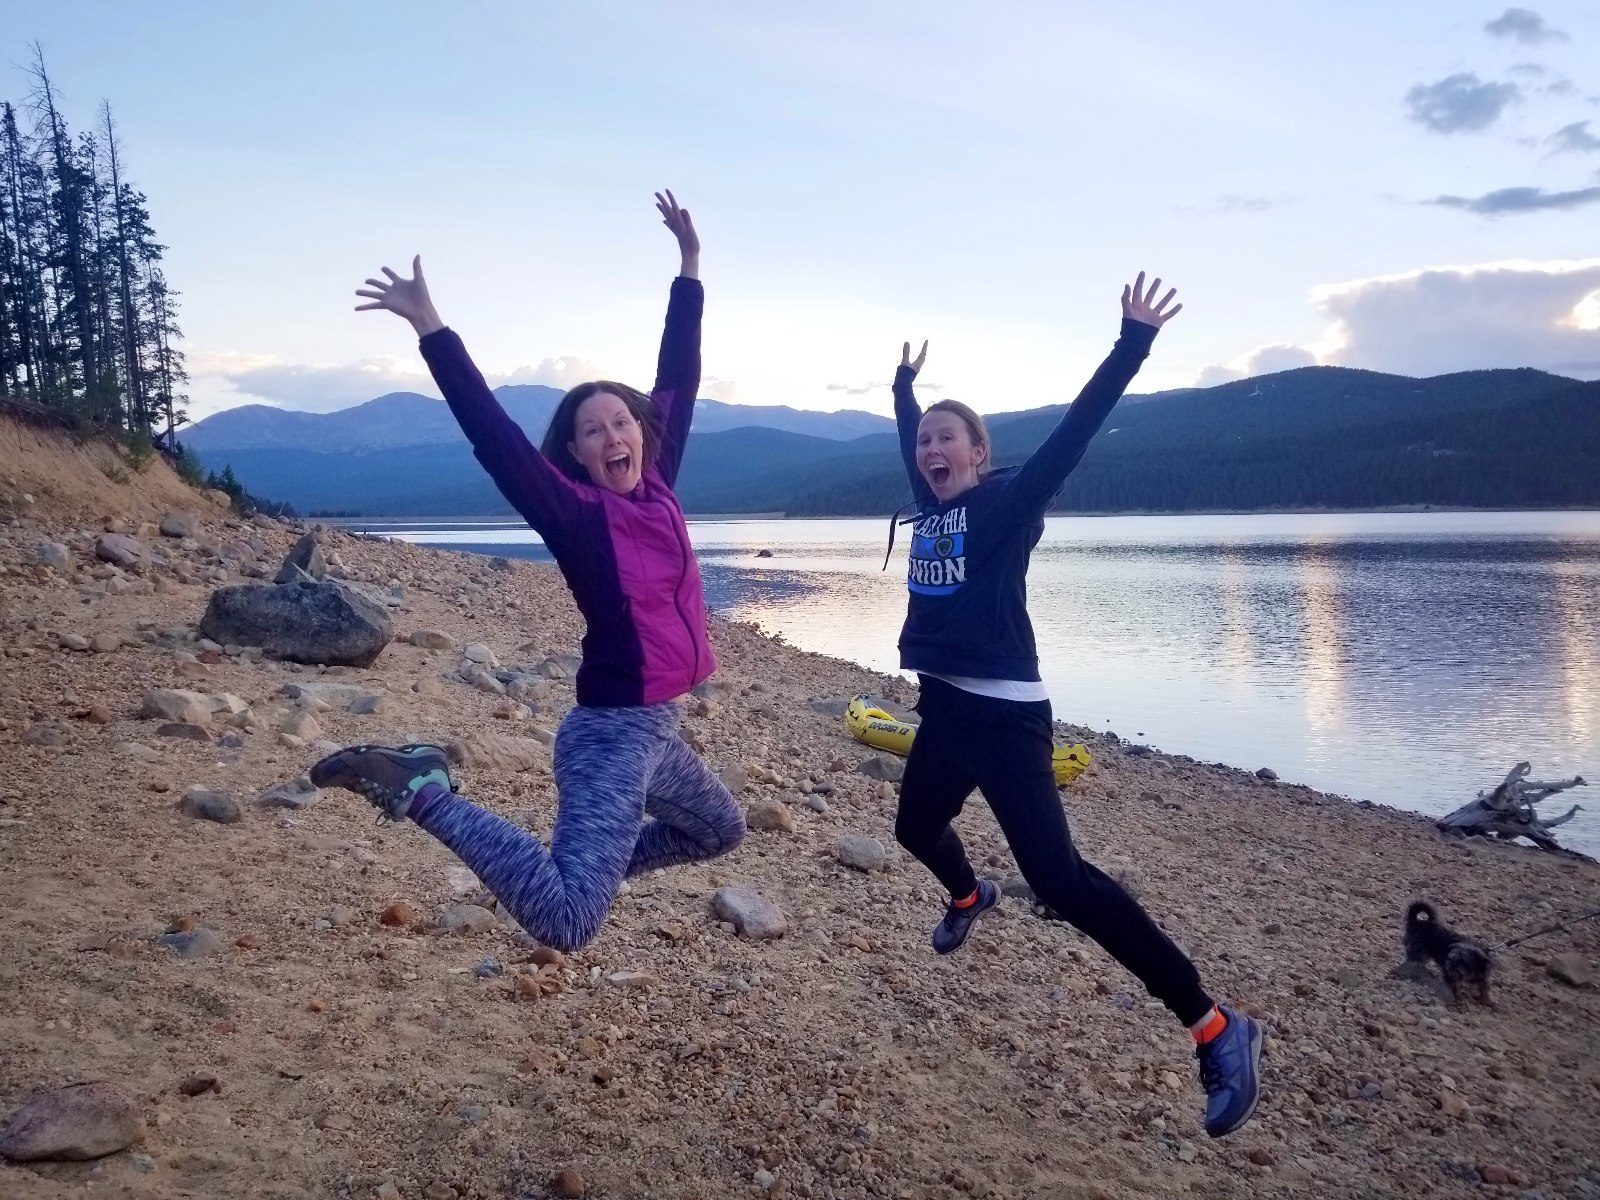 Jumping for joy at chilly Turquoise Lake at sunset